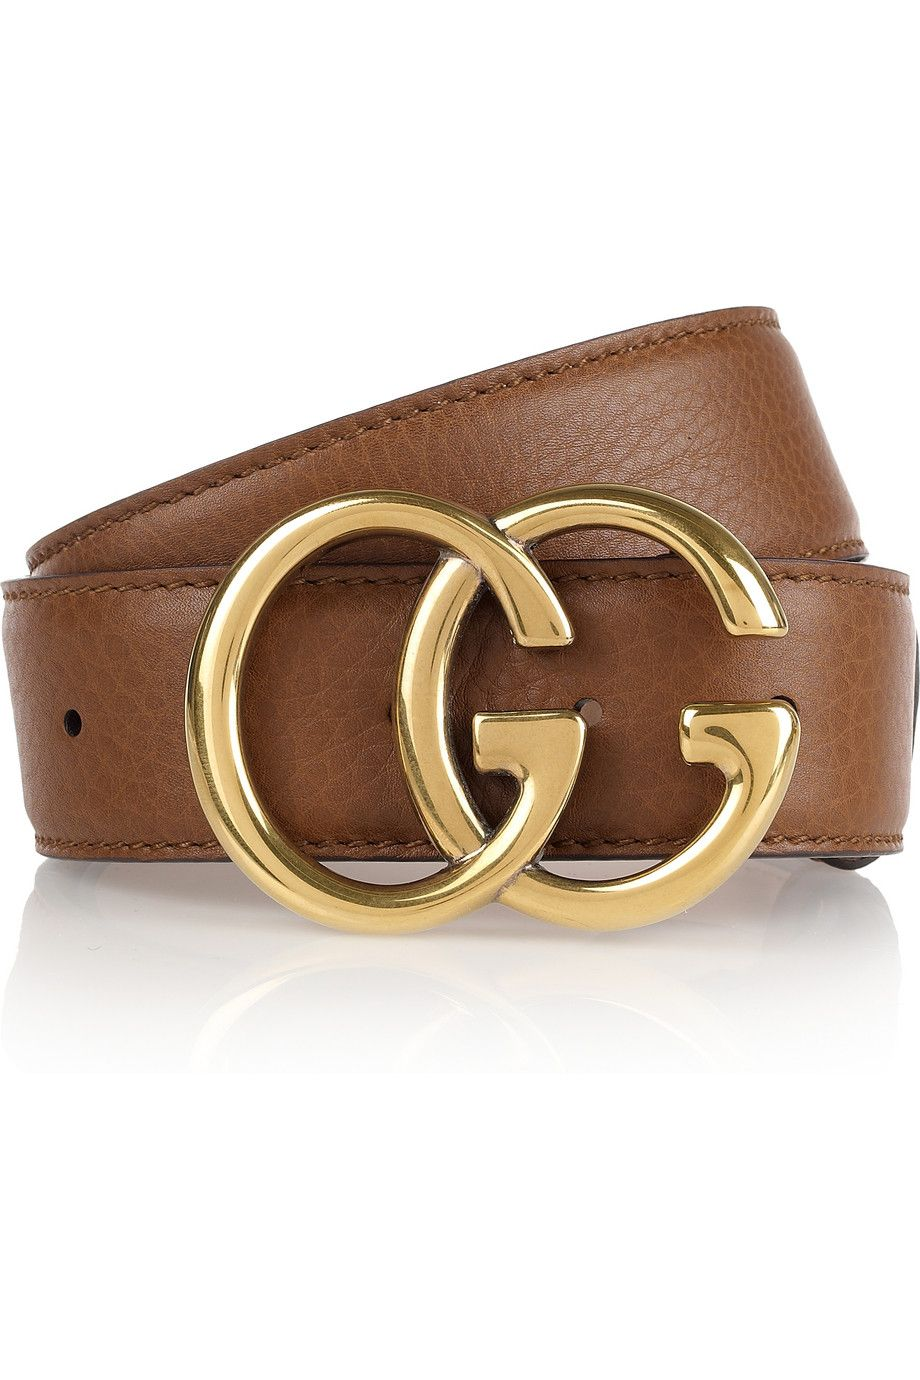 ea633919a077 Gucci Signature leather belt. Gucci Signature leather belt Designer Belts  ...